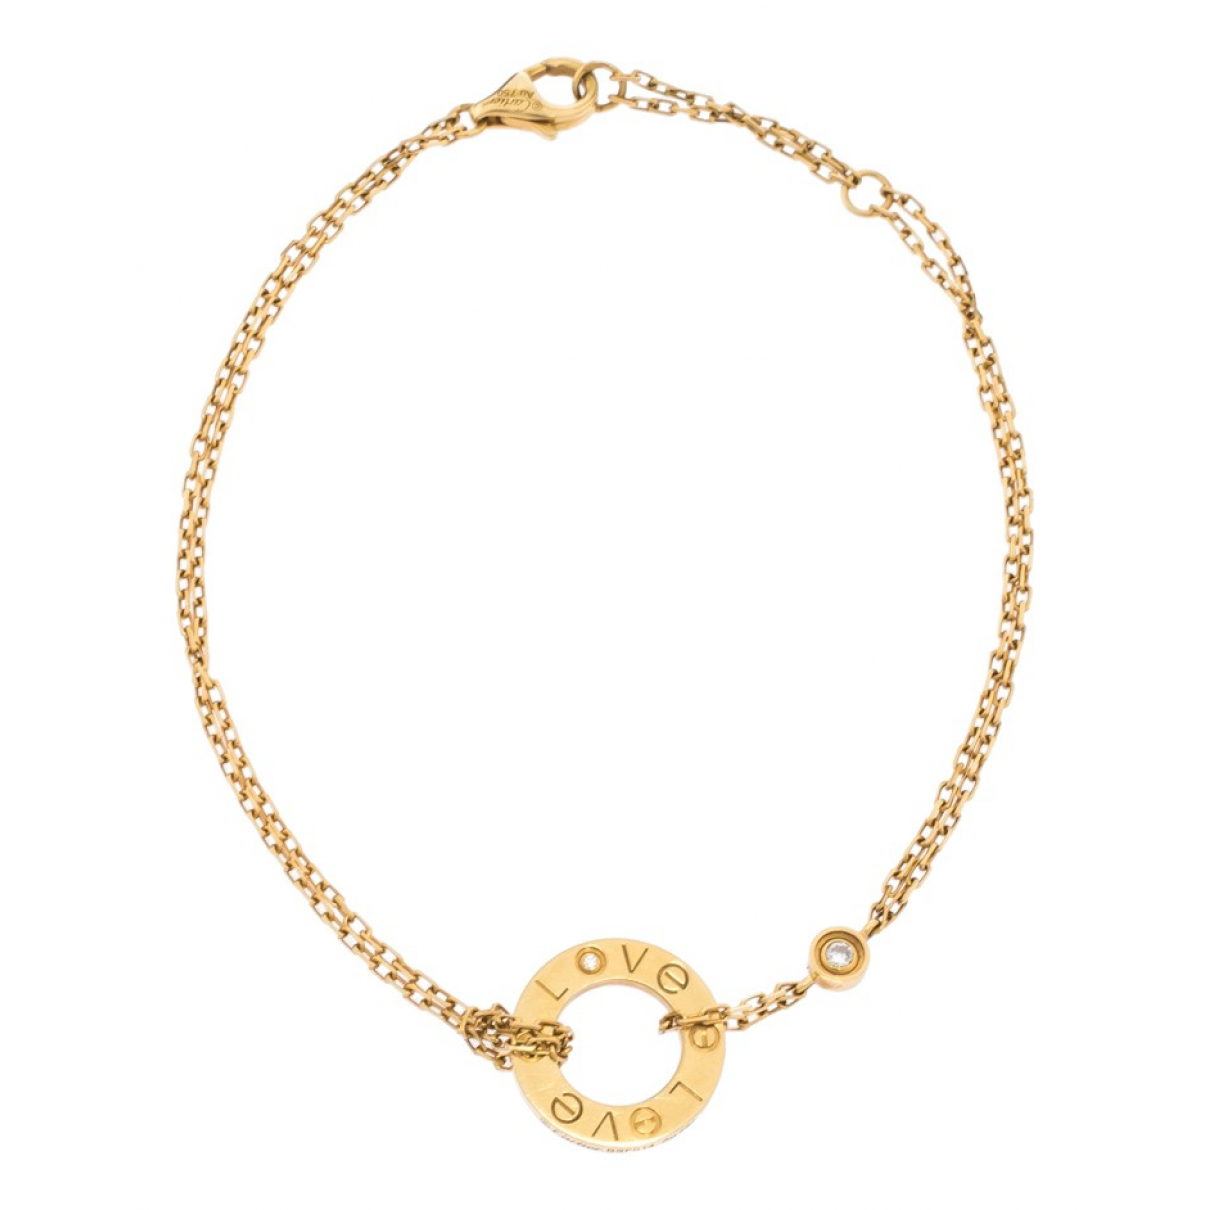 Cartier Love Armband in Gelbgold